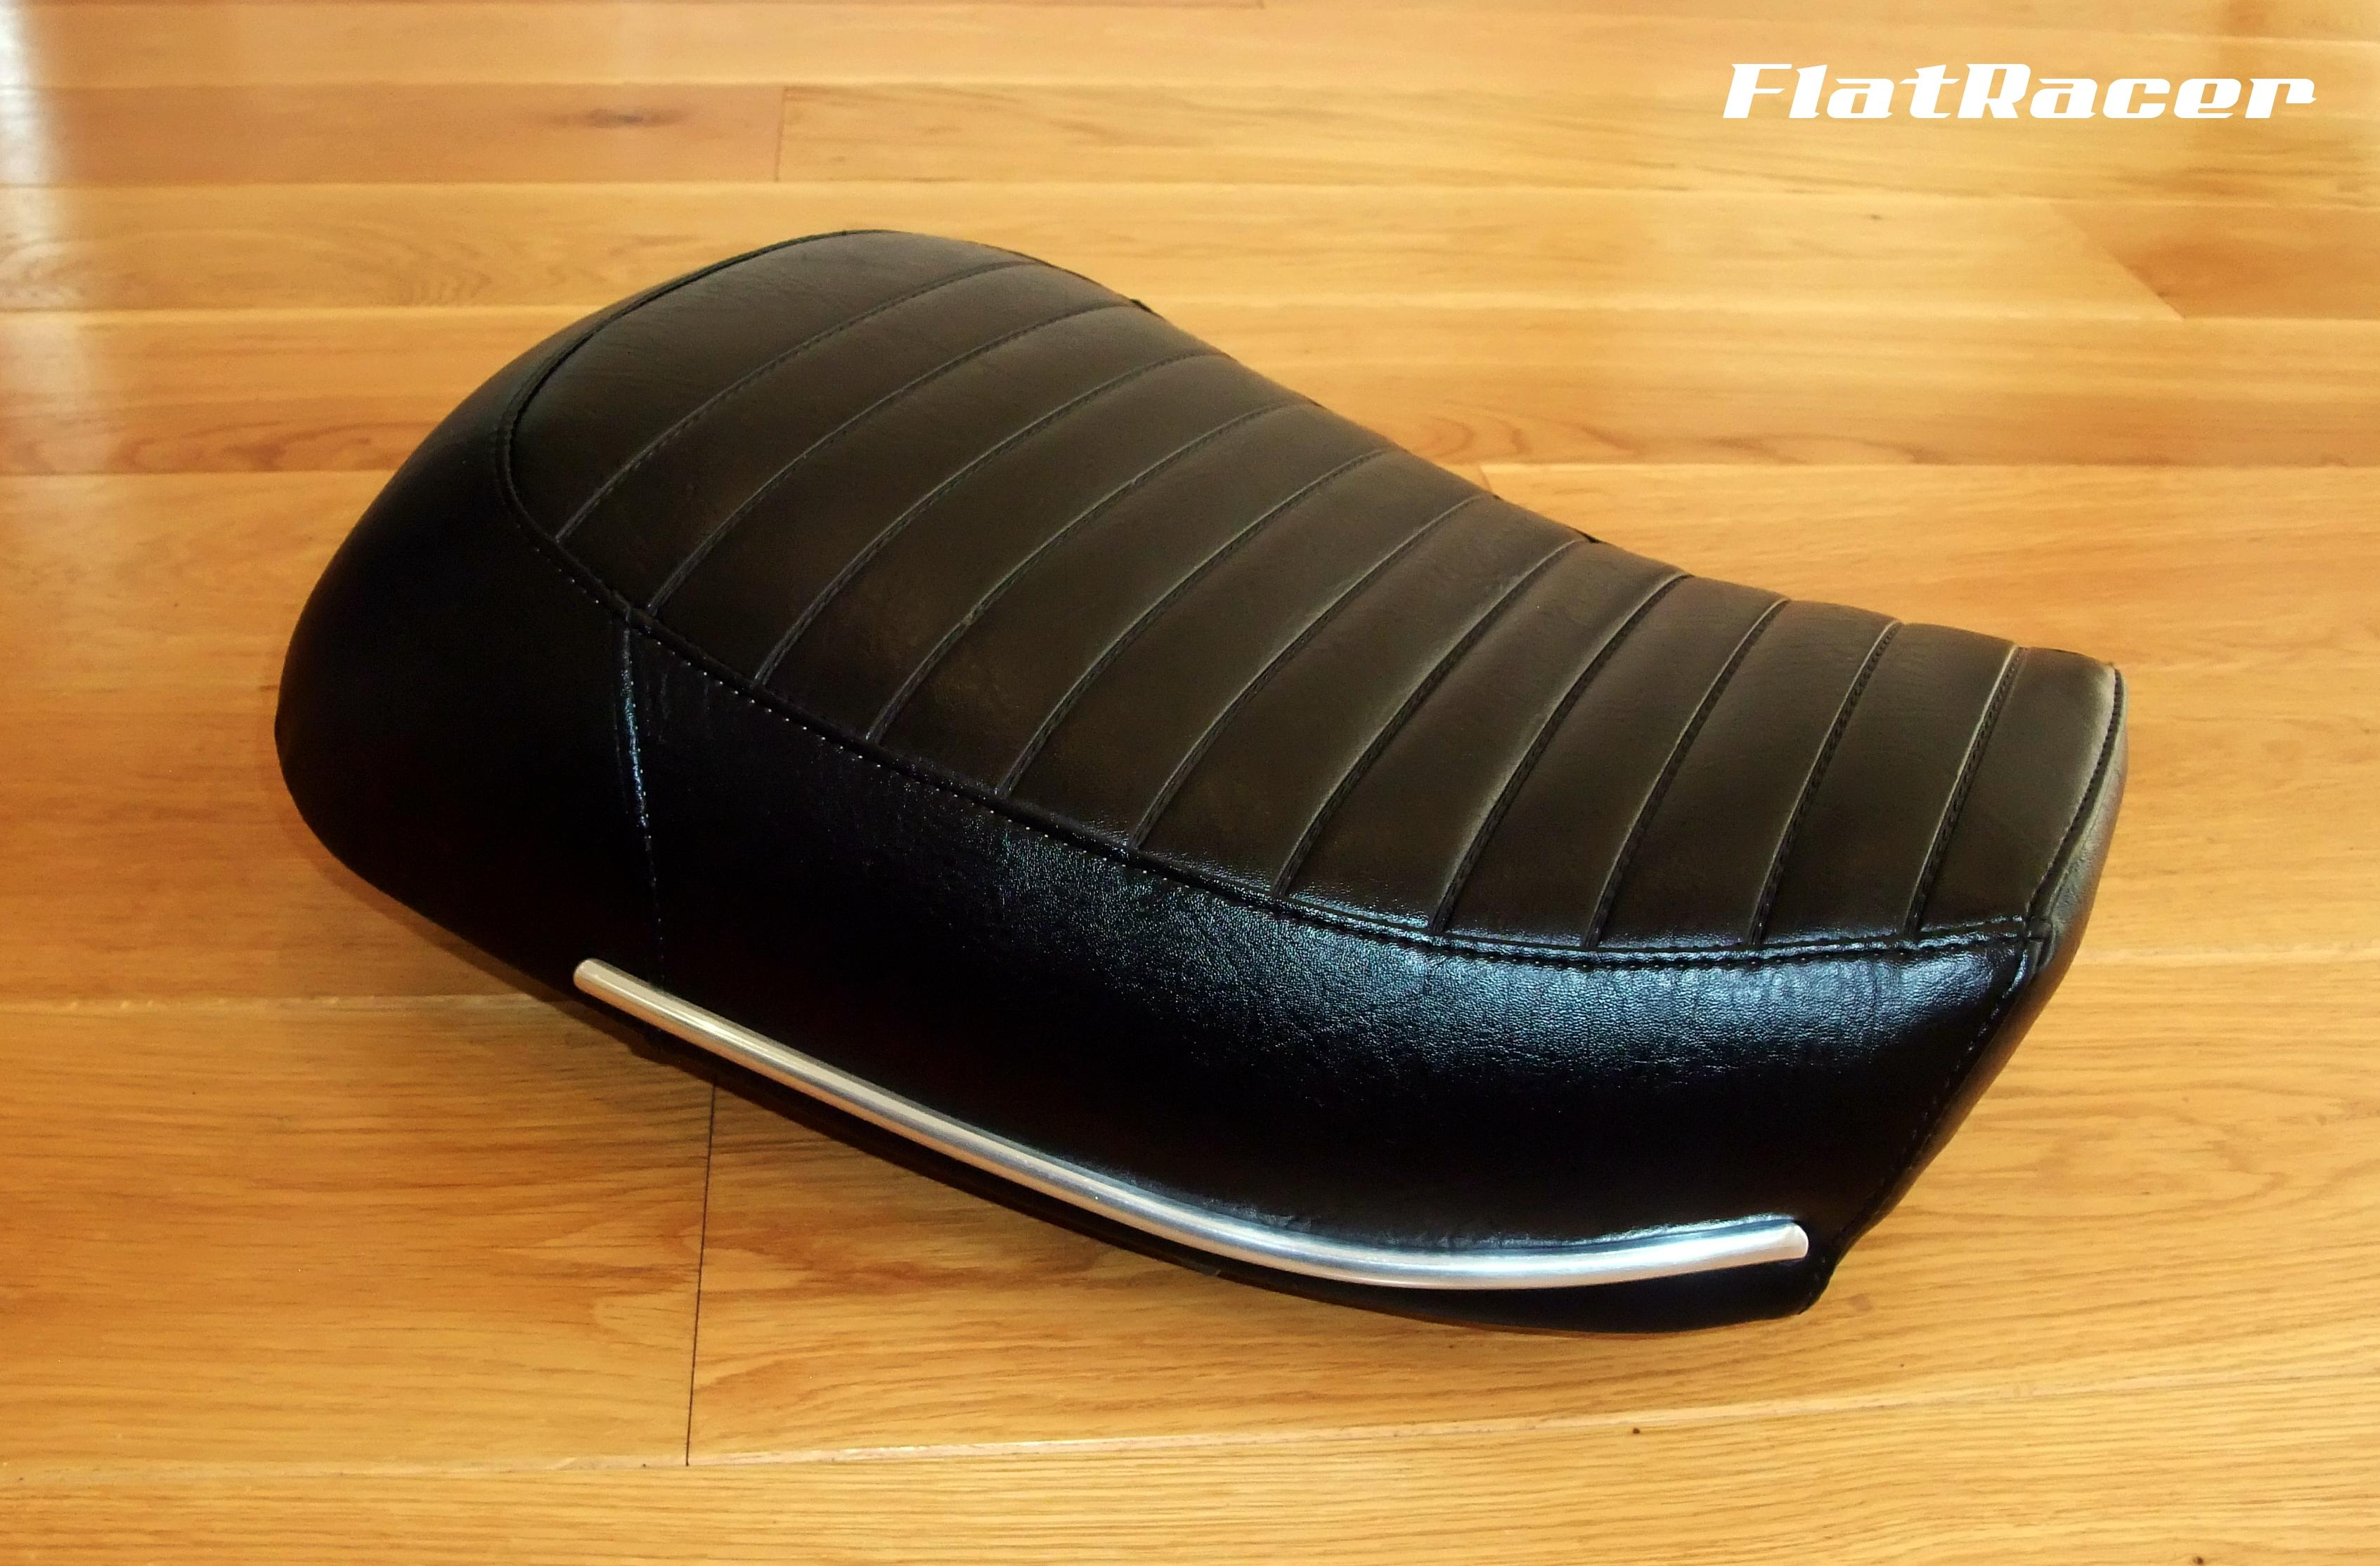 FlatRacer BMW R2v Airhead Boxer /5 Series (70-73) replica TIC single seat